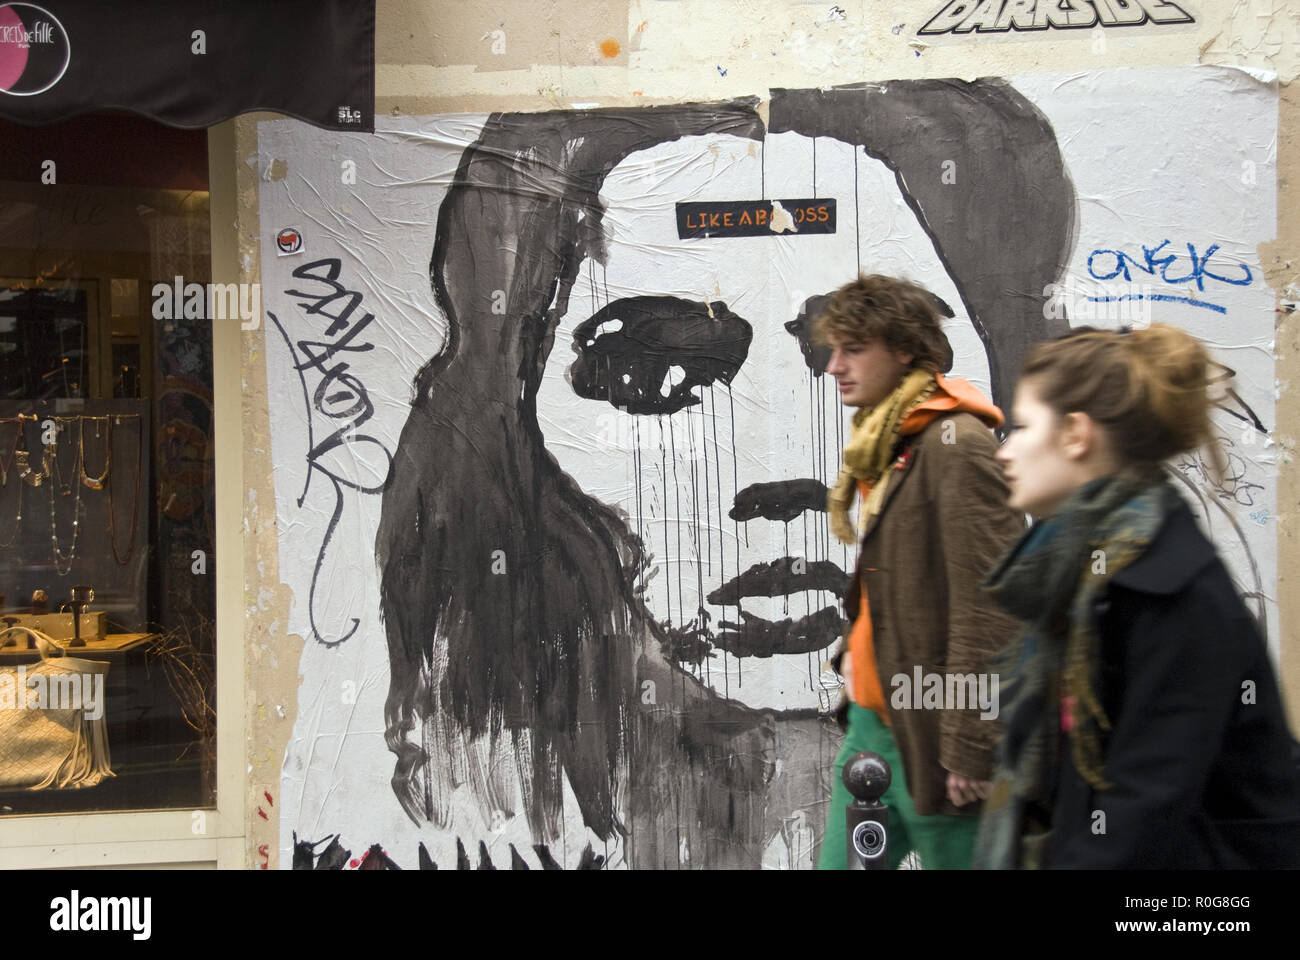 University students walk past a poster pasted to a wall in the Latin Quarter, near the Sorbonne, Paris, France. - Stock Image